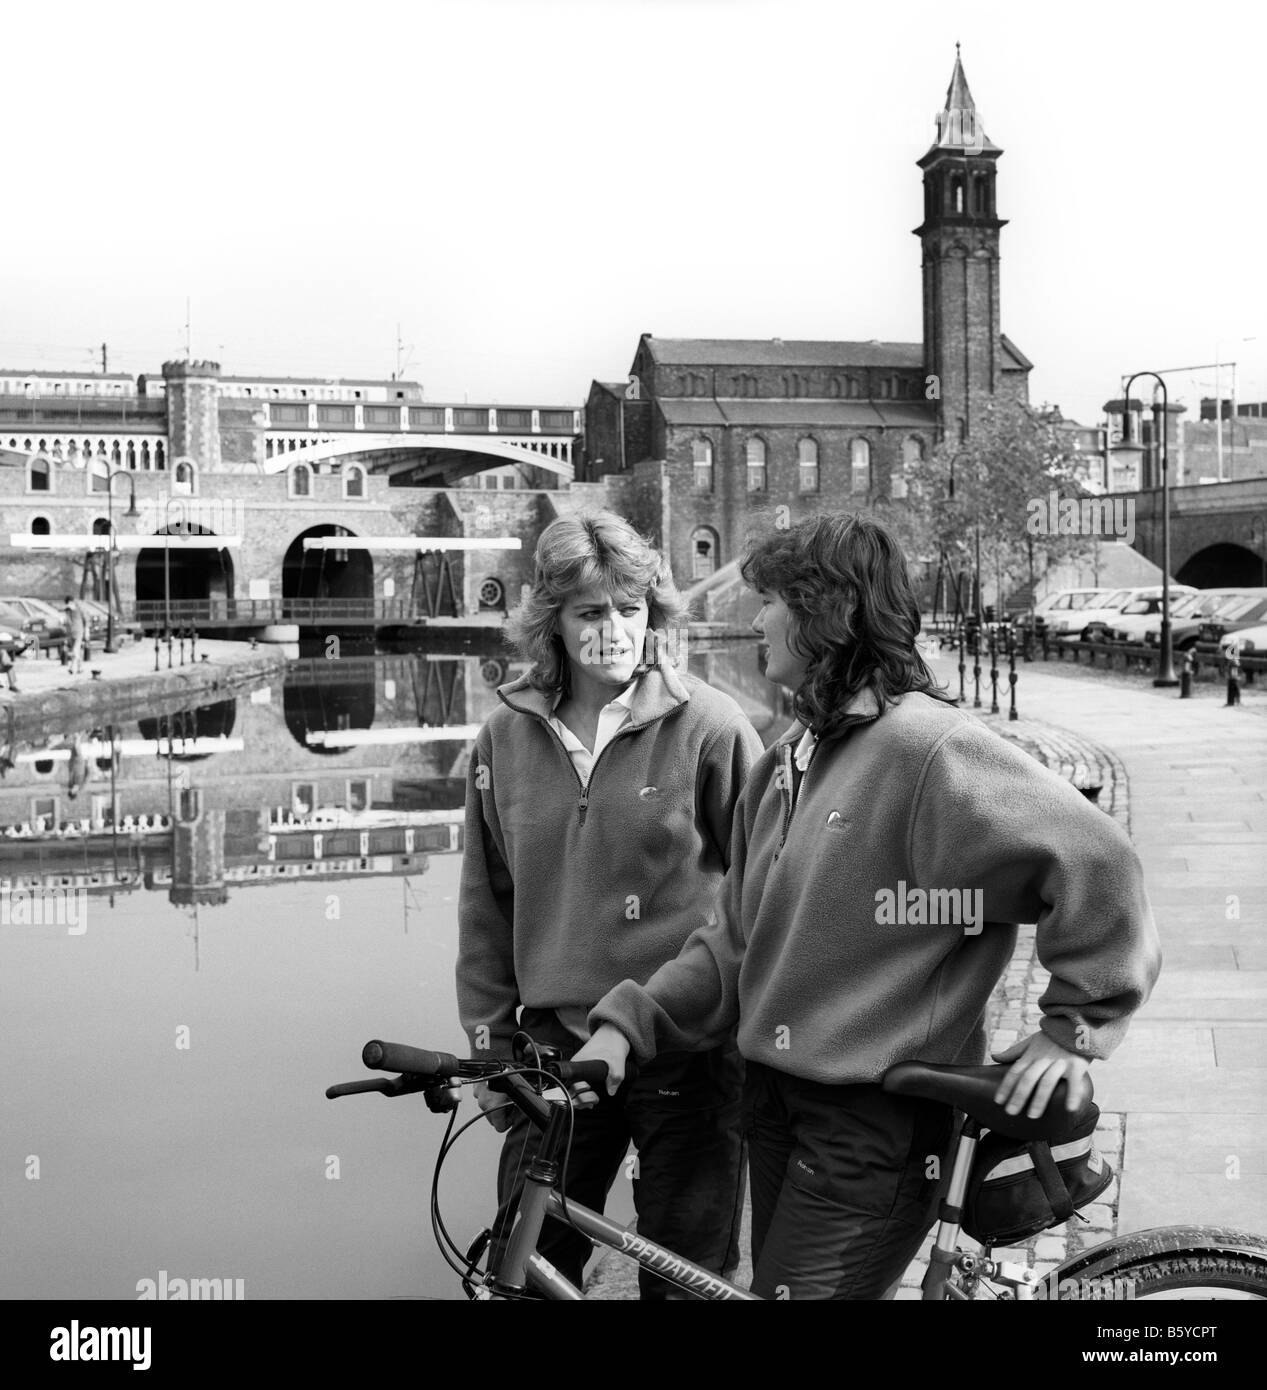 UK England Manchester city centre Castlefield Rangers patrolling Bridgewater Canal on bicycles - Stock Image